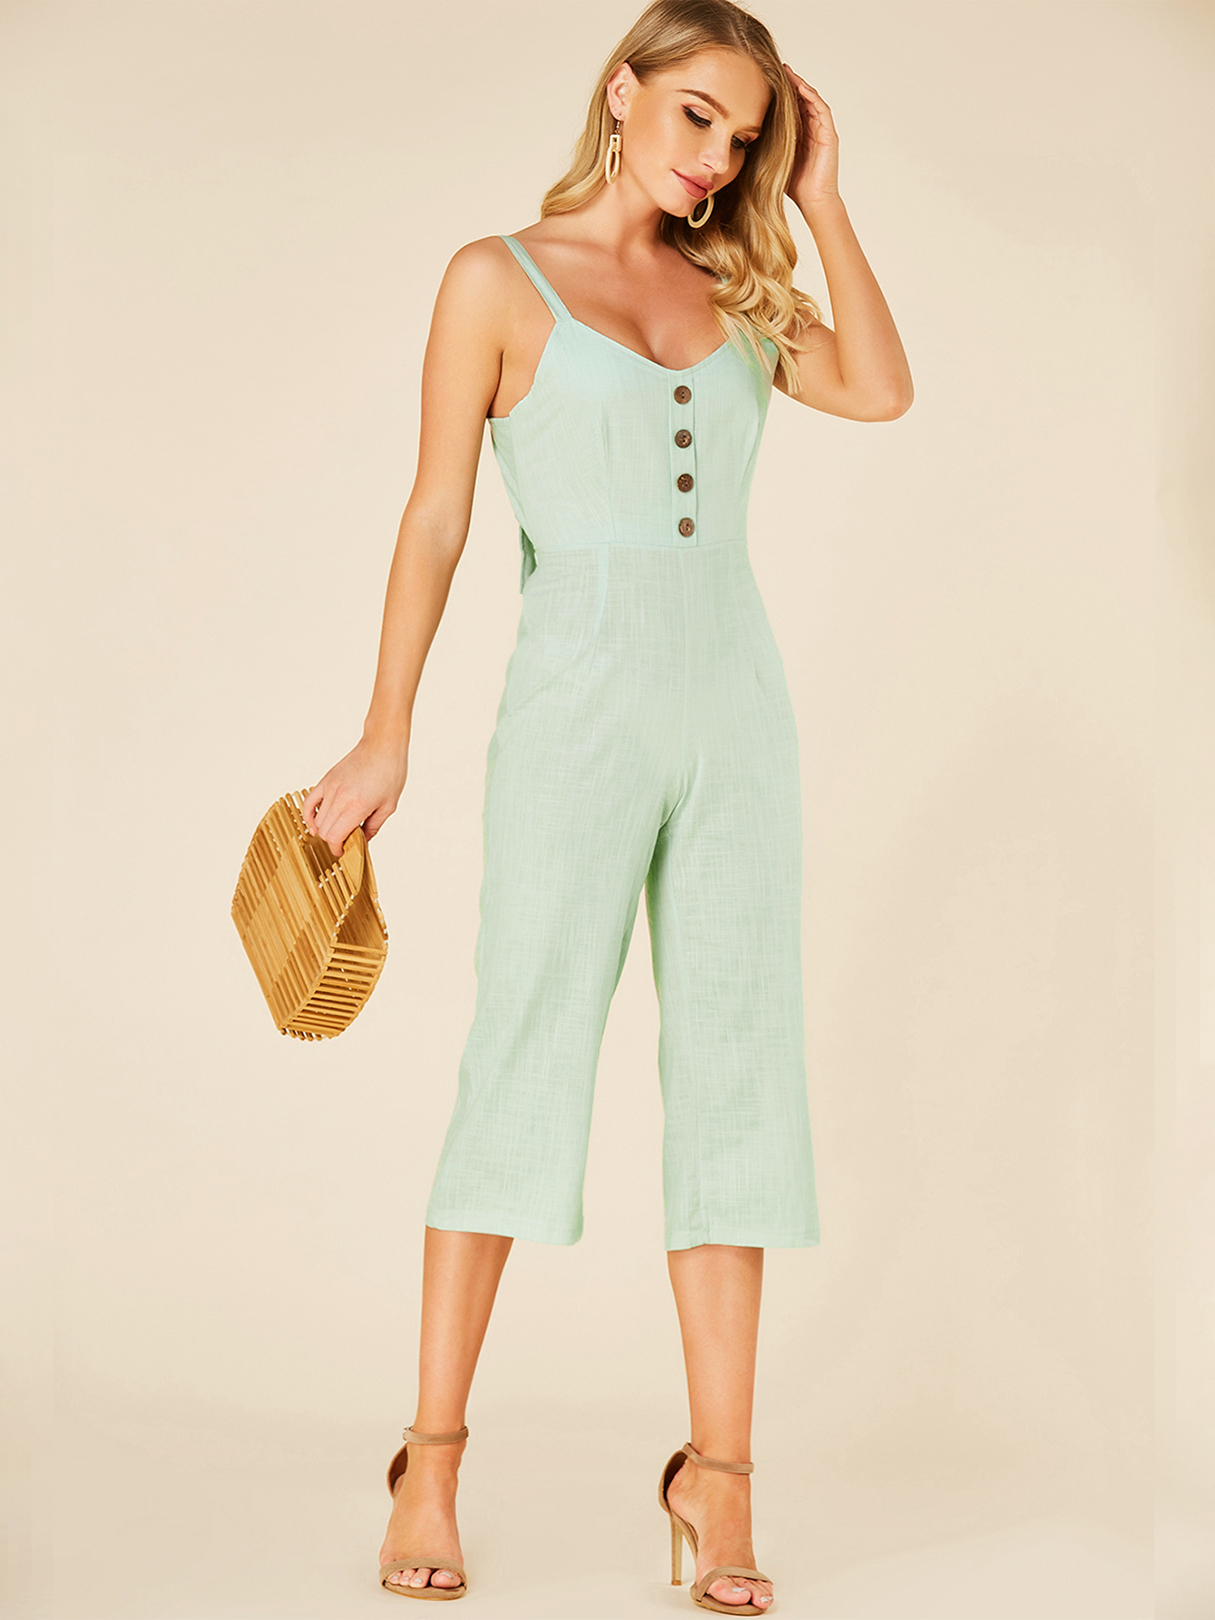 Mint Green Backless Design Deep V Neck Sleeveless Jumpsuit